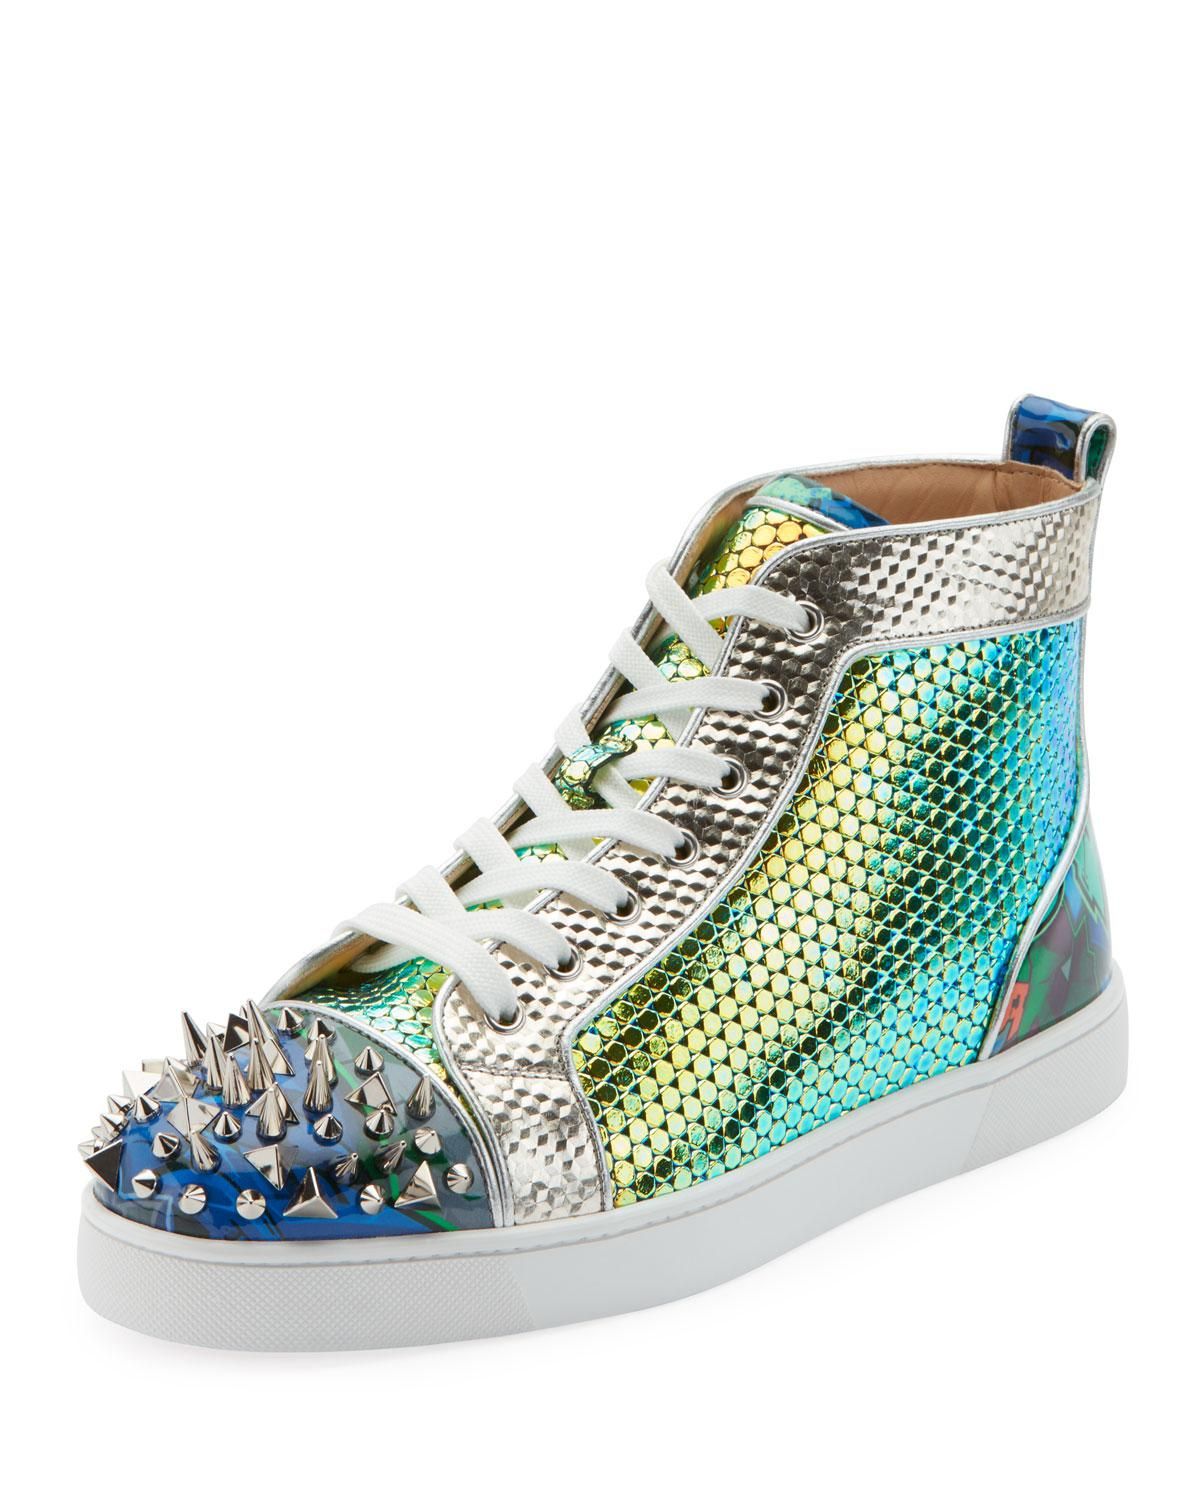 c9cc16dbf2f1 Lyst - Christian Louboutin Men s Spiked Metallic Holographic Mid-top ...